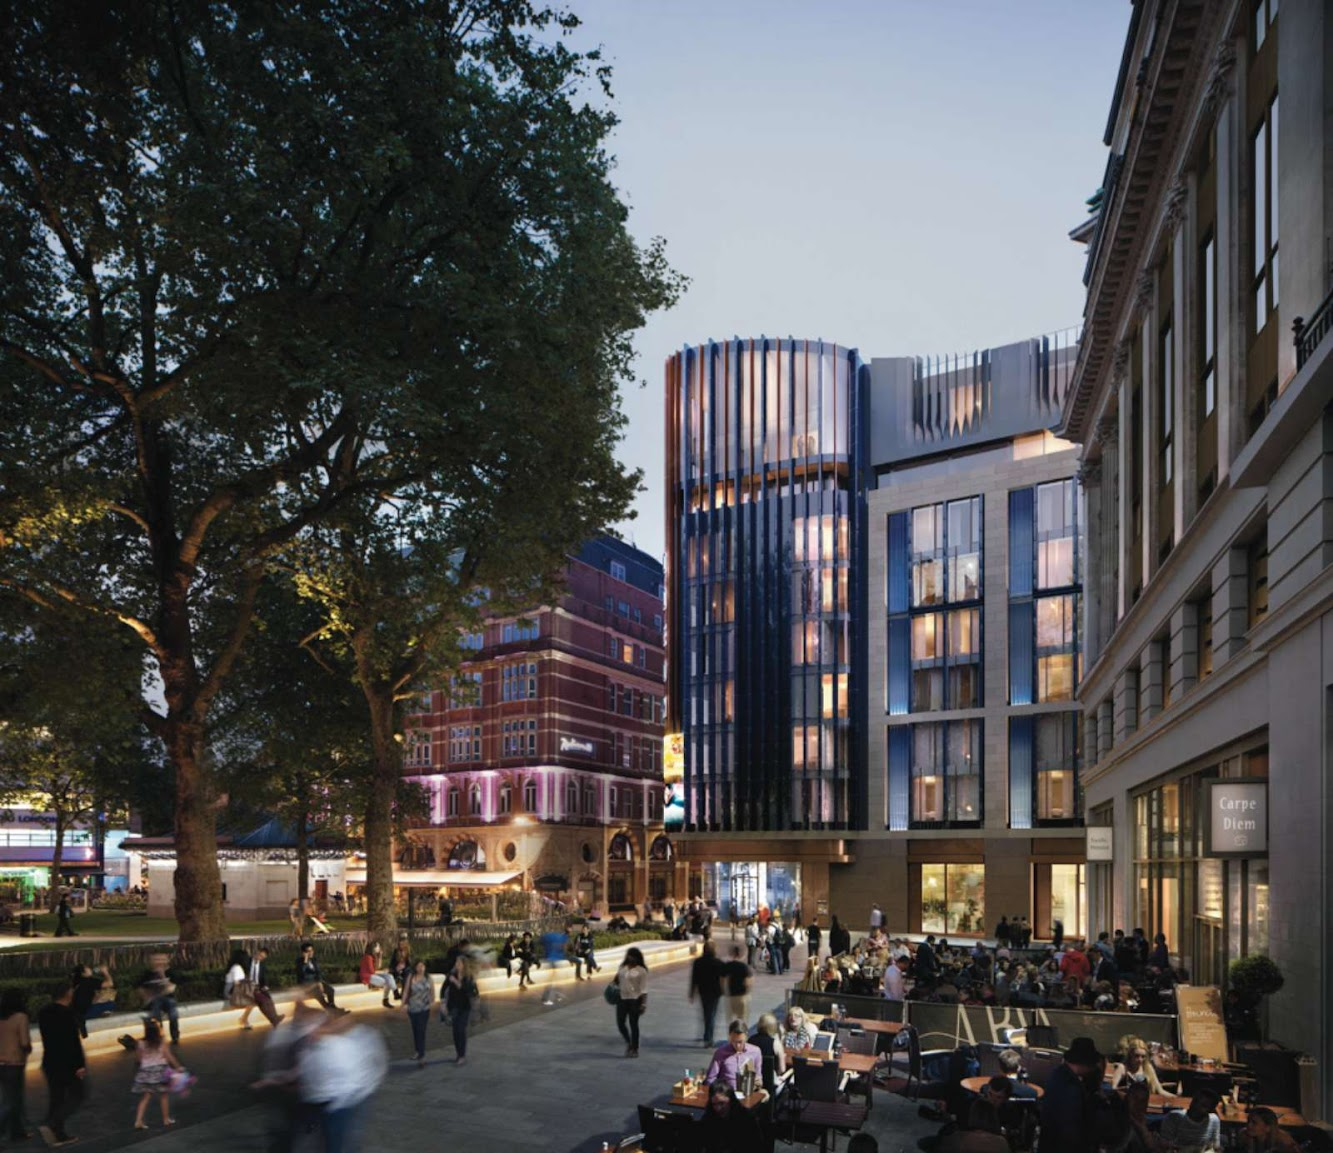 News: HOTEL PLANS in LONDON'S LEICESTER SQUARE by WOODS BAGOT